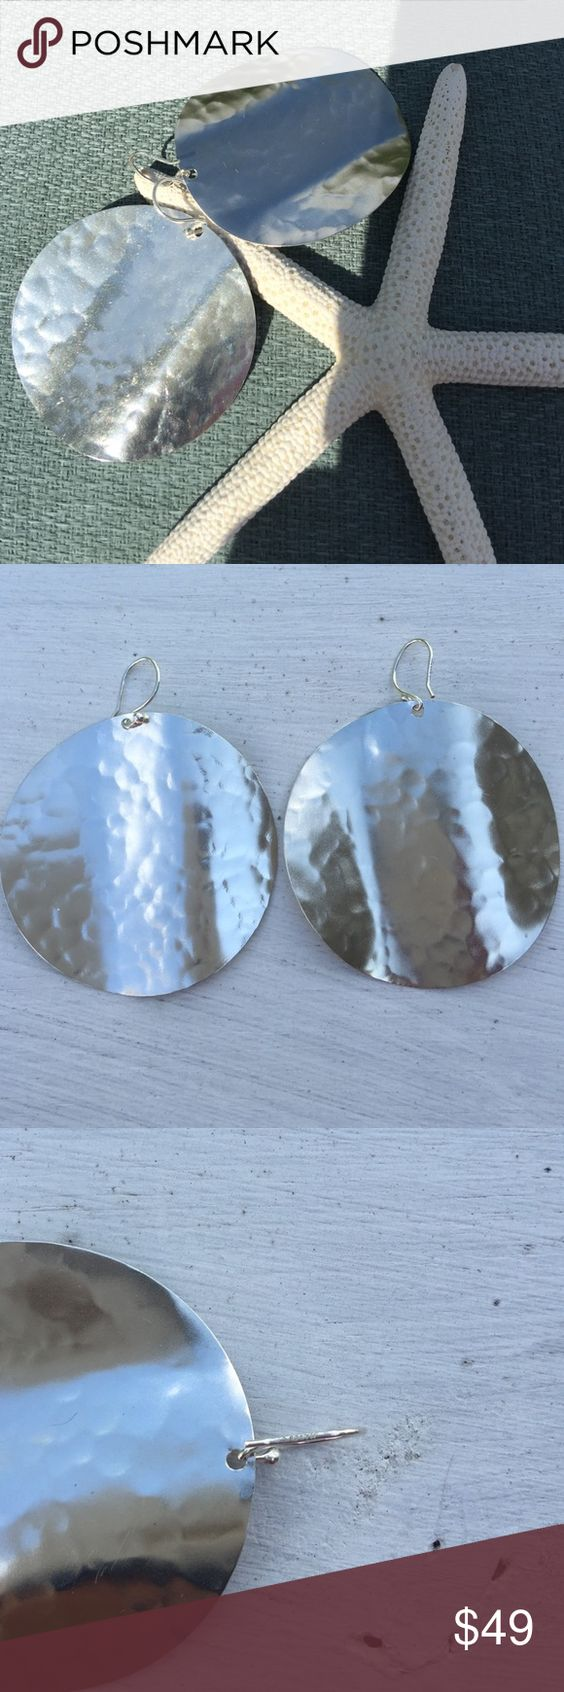 d sterling silver earrings and silver silpada earrings large silpada hammered sterling silver earrings french wire great condition silpada